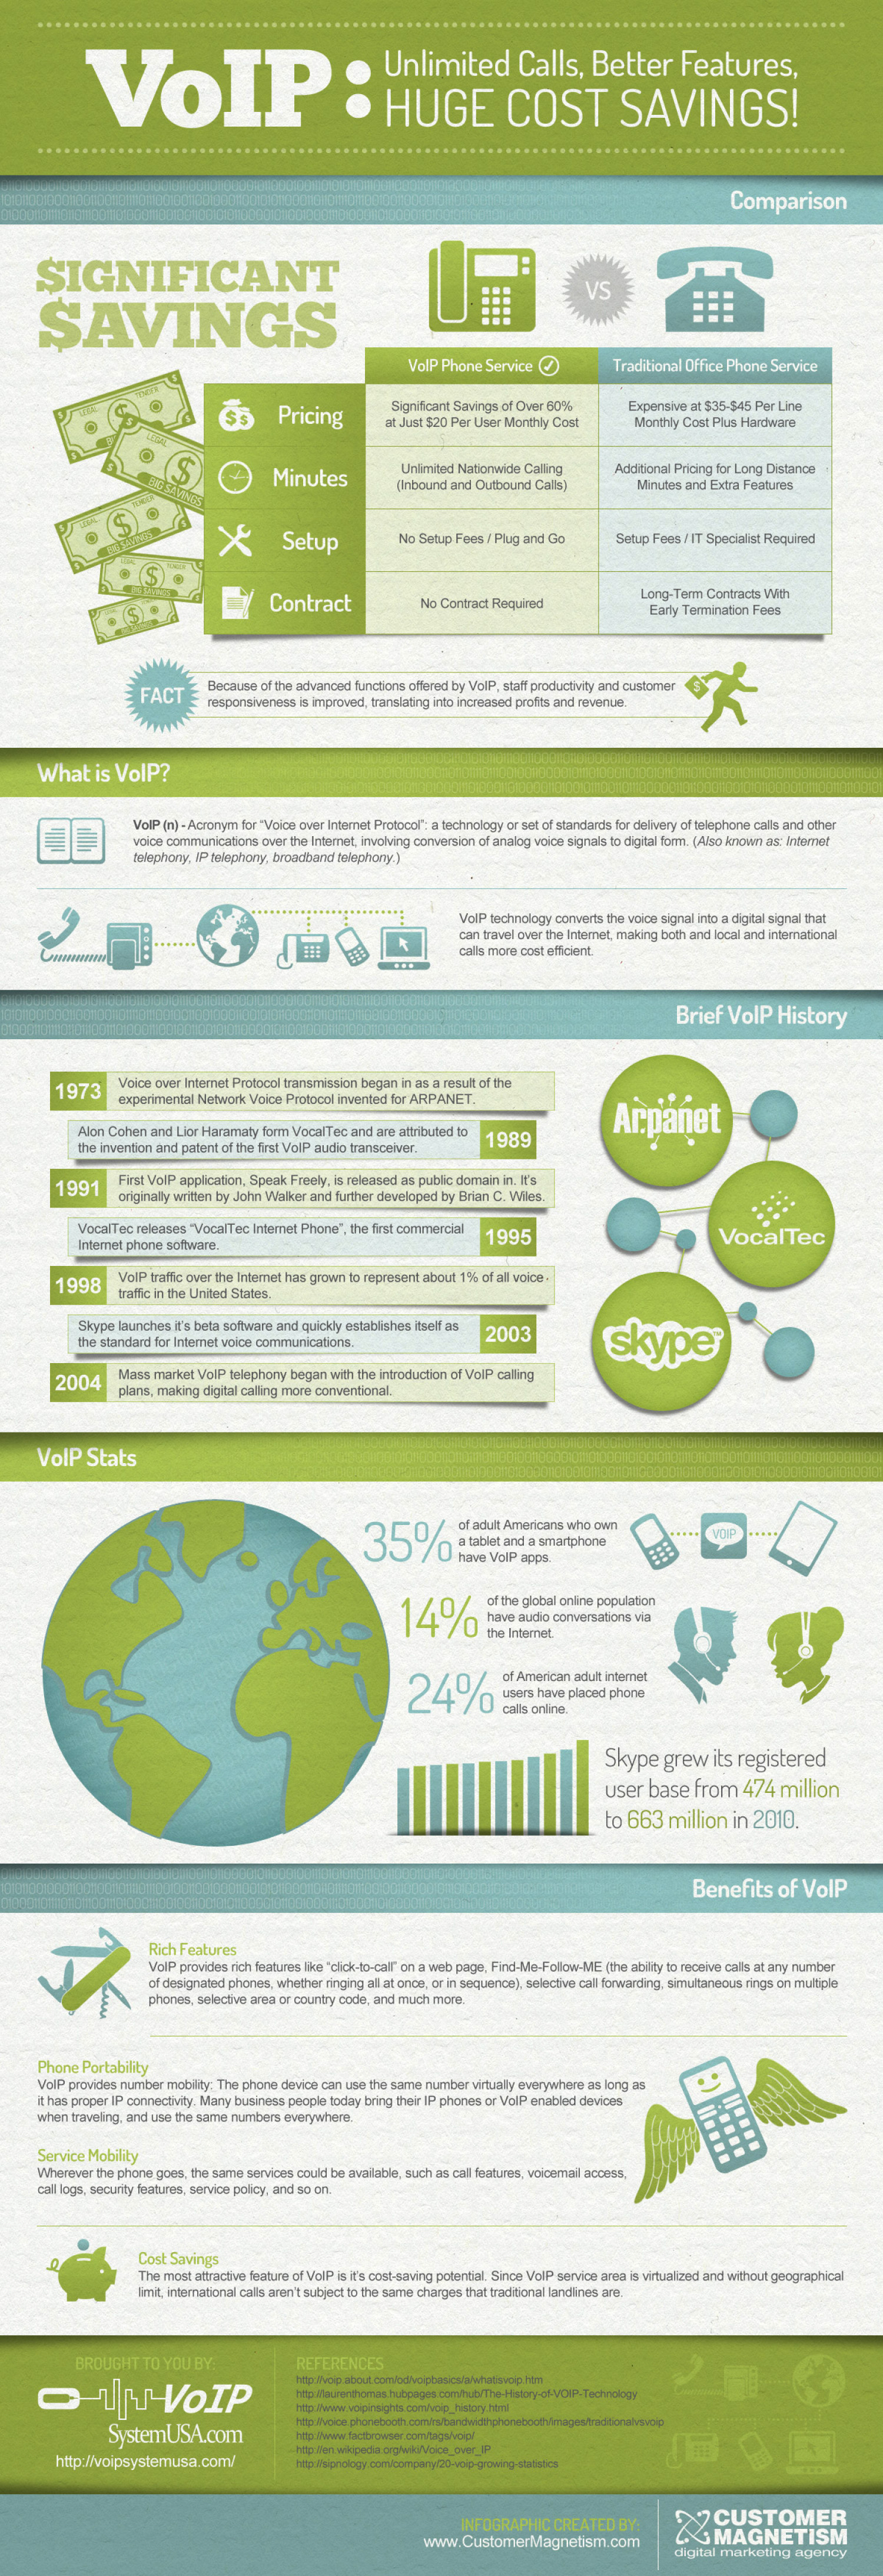 VoIP: the world of a growing technology Infographic